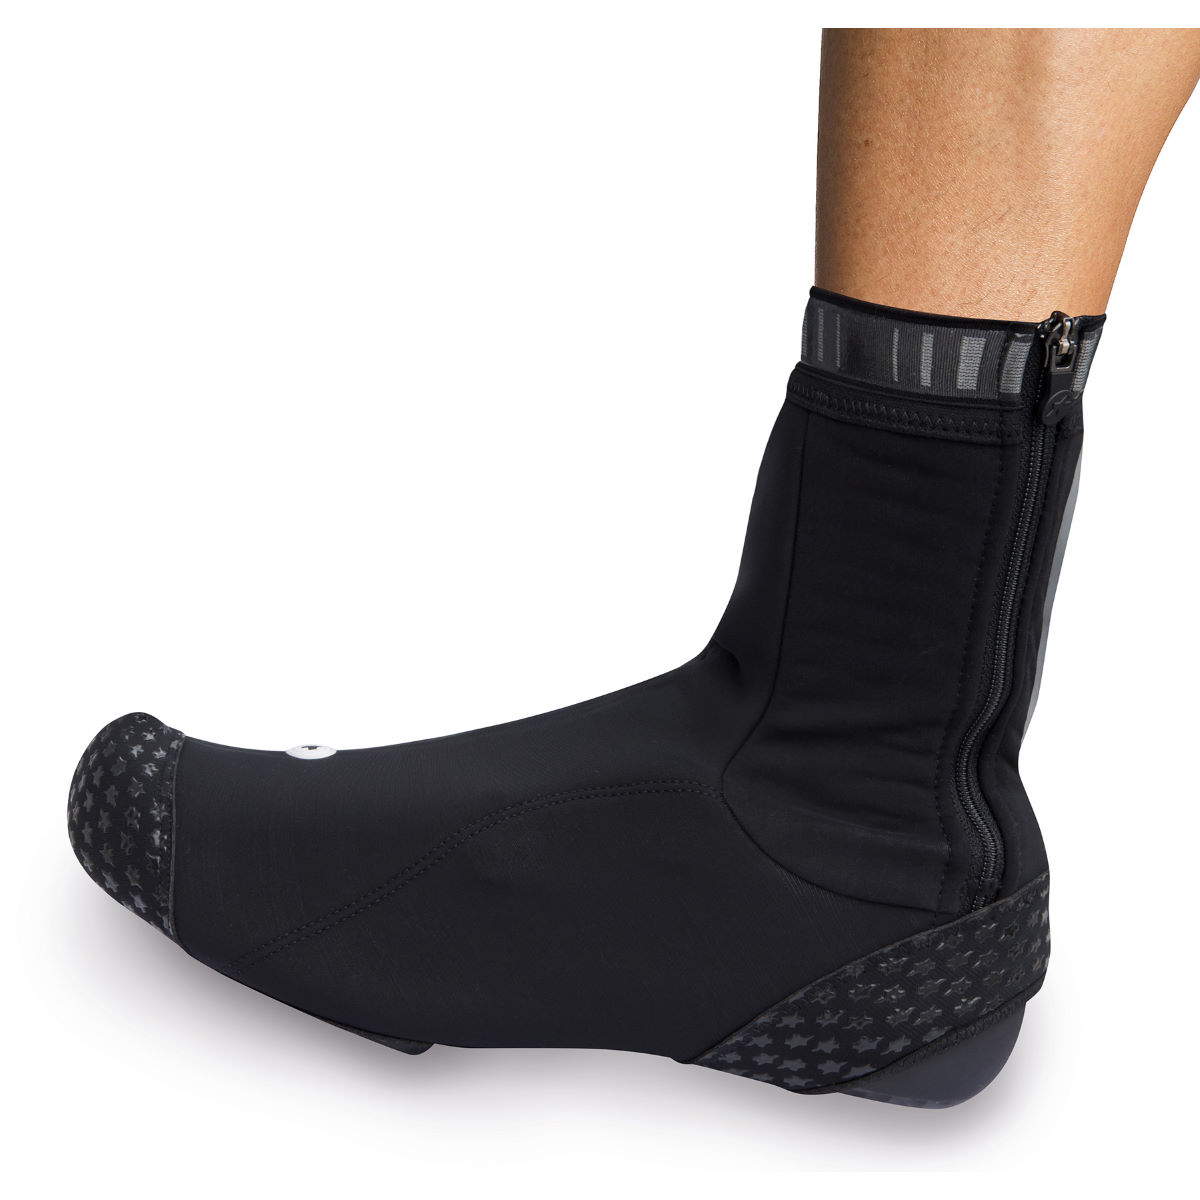 Assos winterbooties s7 internal black volkanga aw17 p13 62 628 12 0